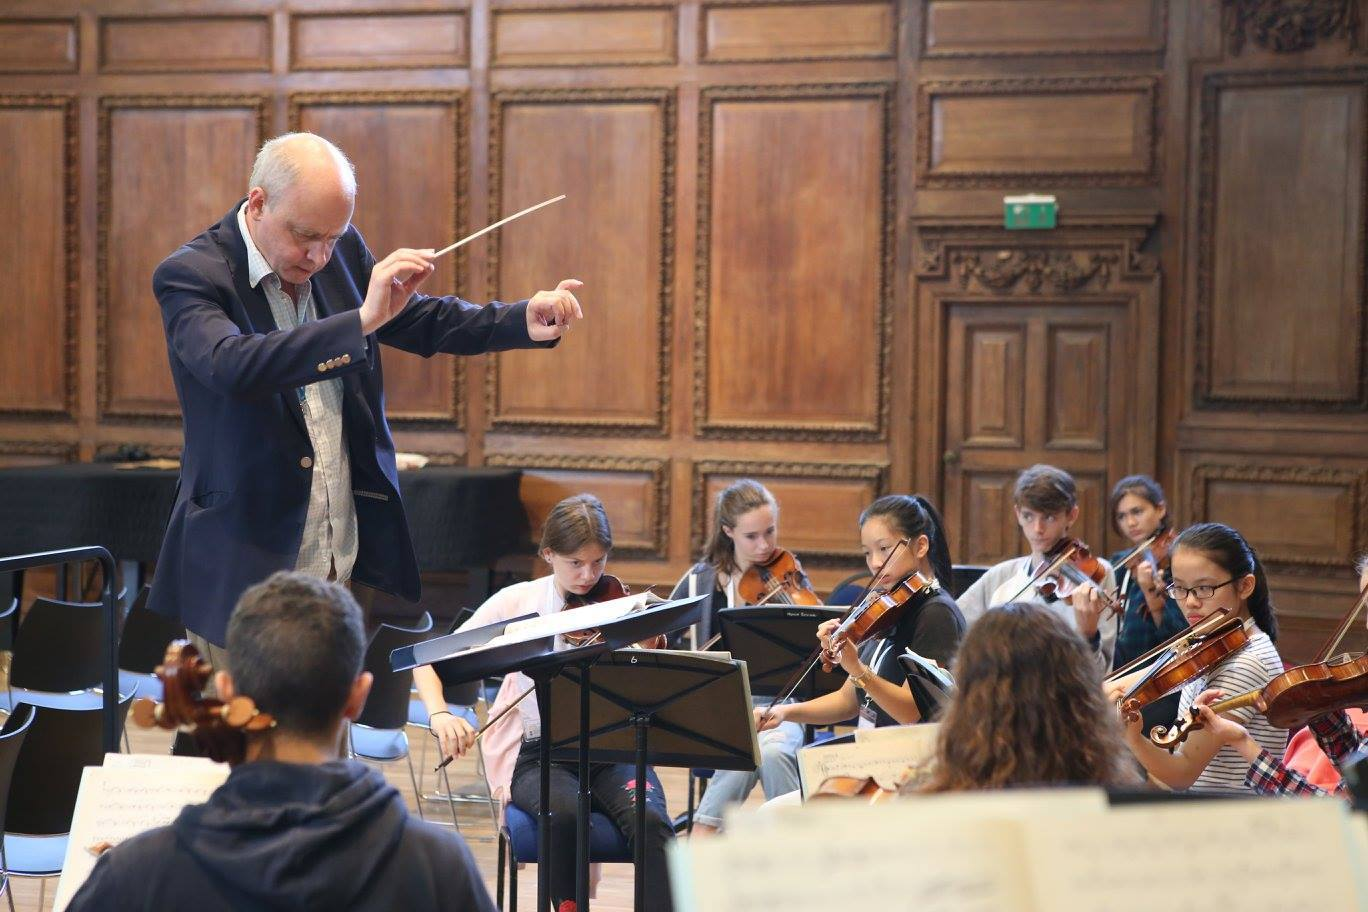 Orchestra summer course in England UK - Matthew Taylor conducts the Ingenium Academy orchestra